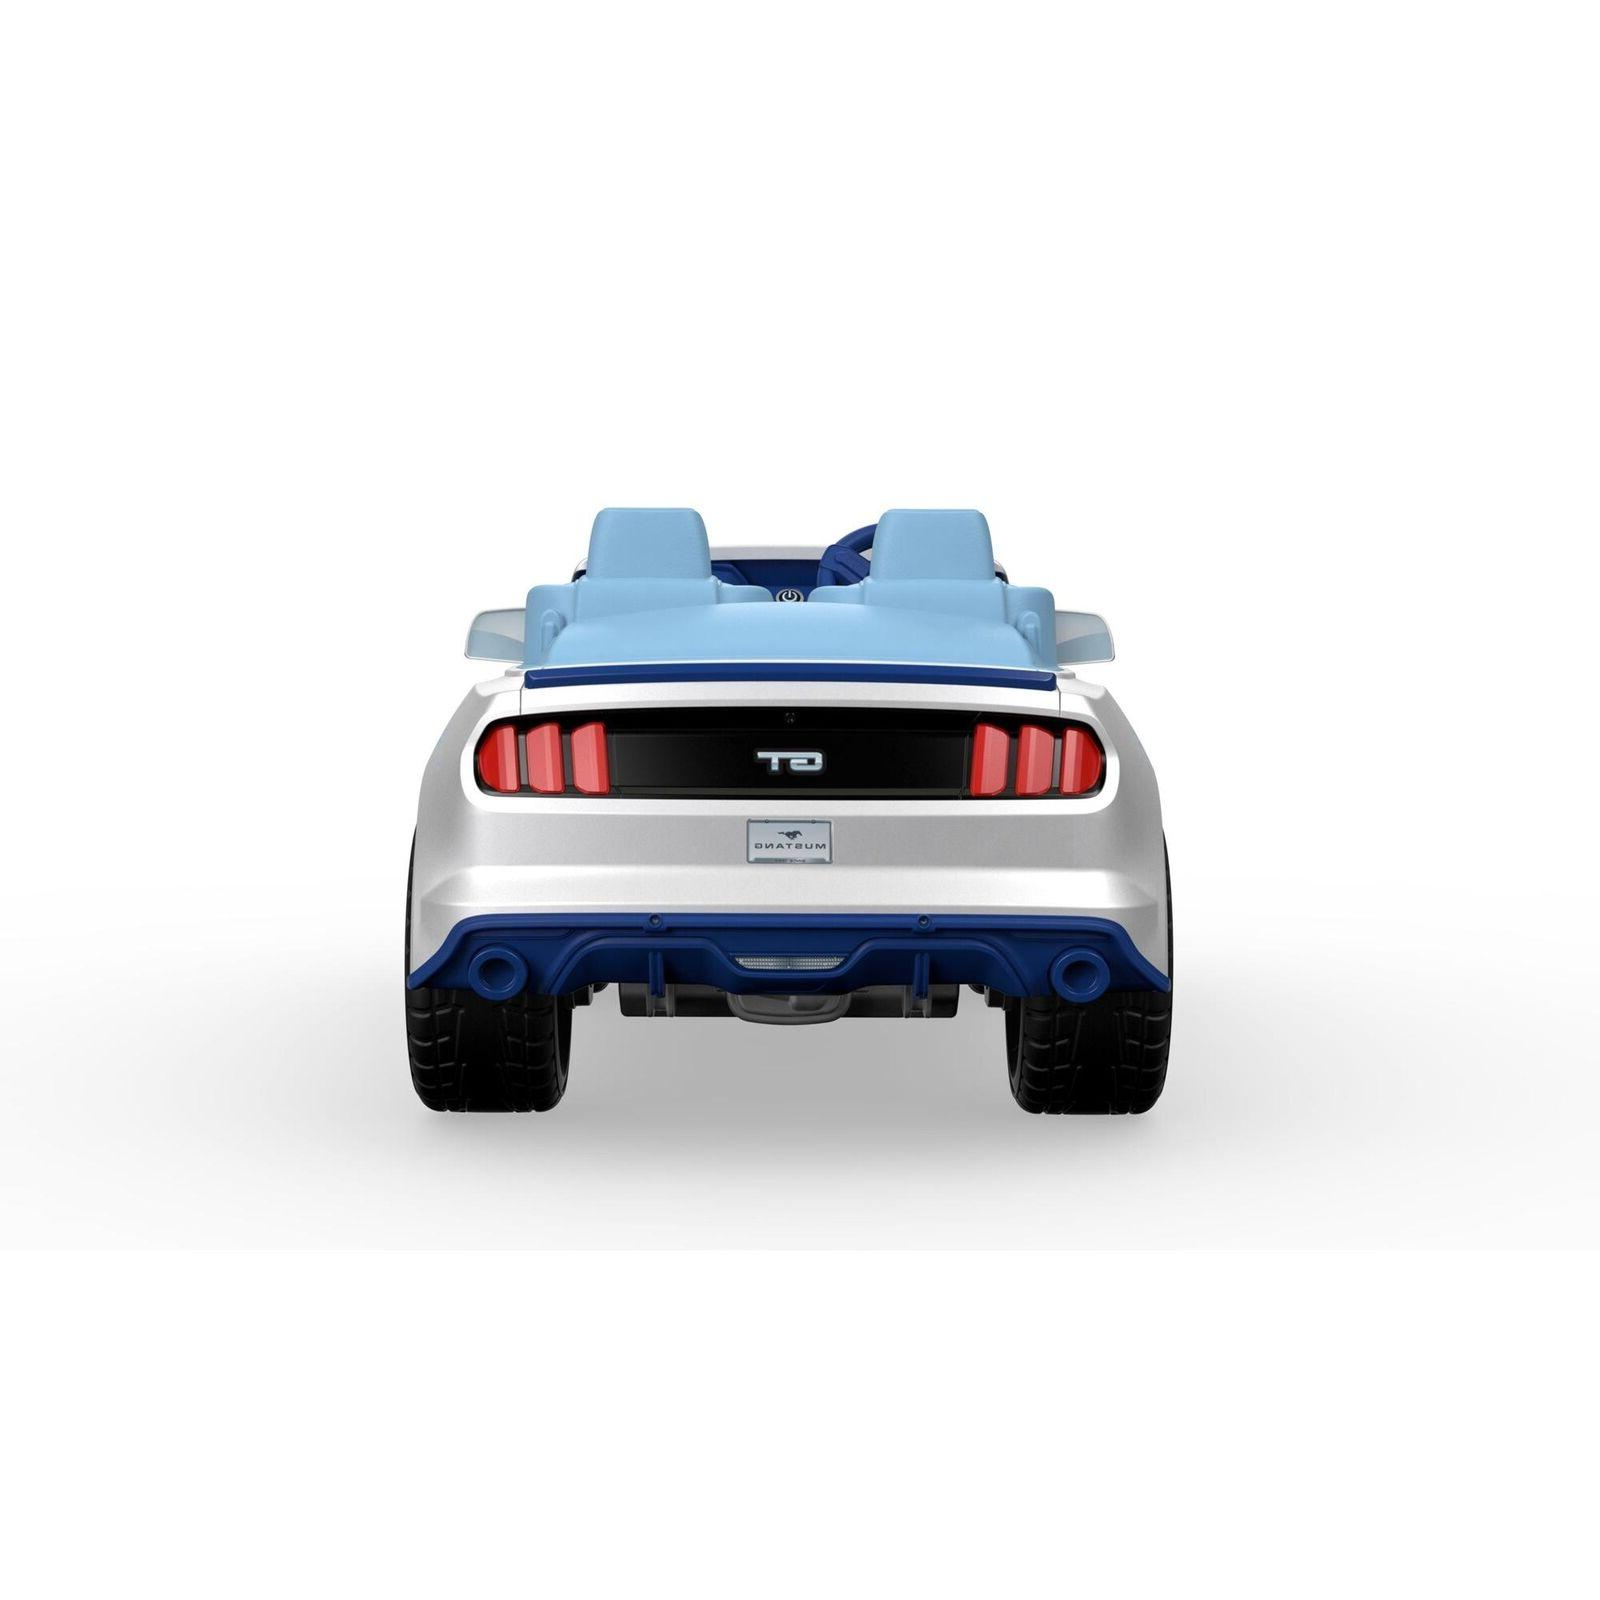 Electric Cars Kids To Frozen Ford Mustang Vehicle